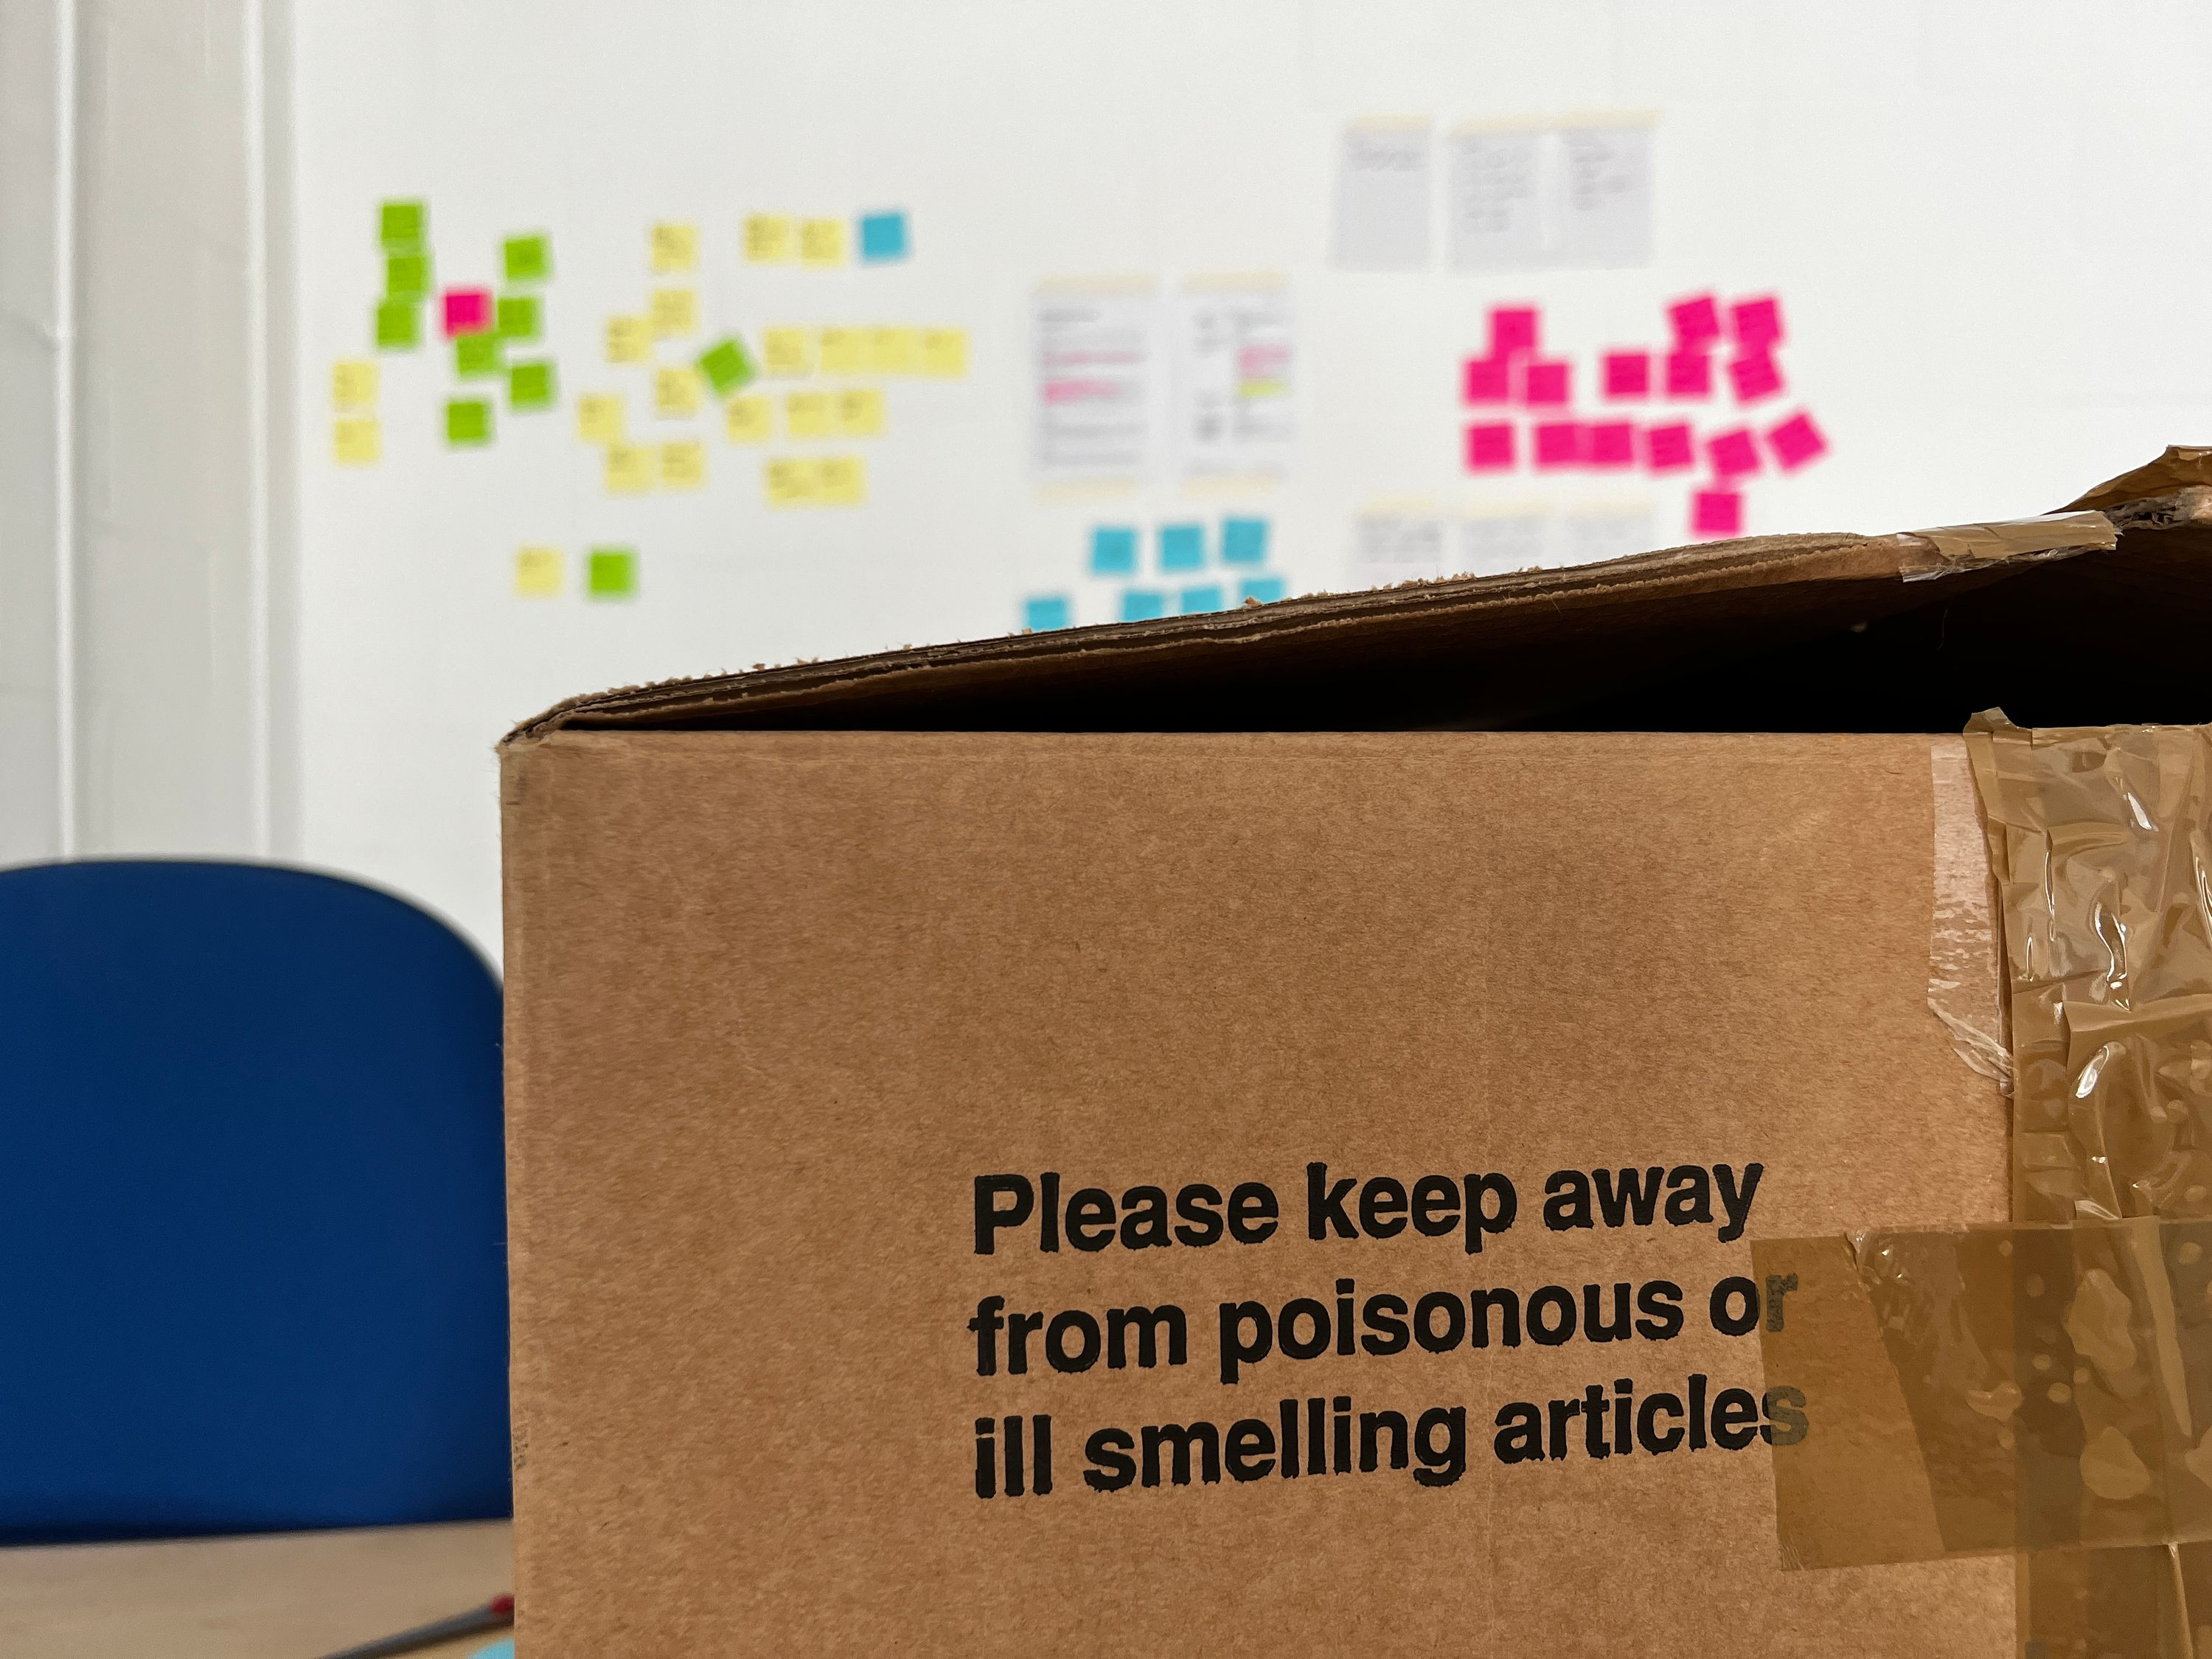 Please keep away from poisonous or ill smelling articles